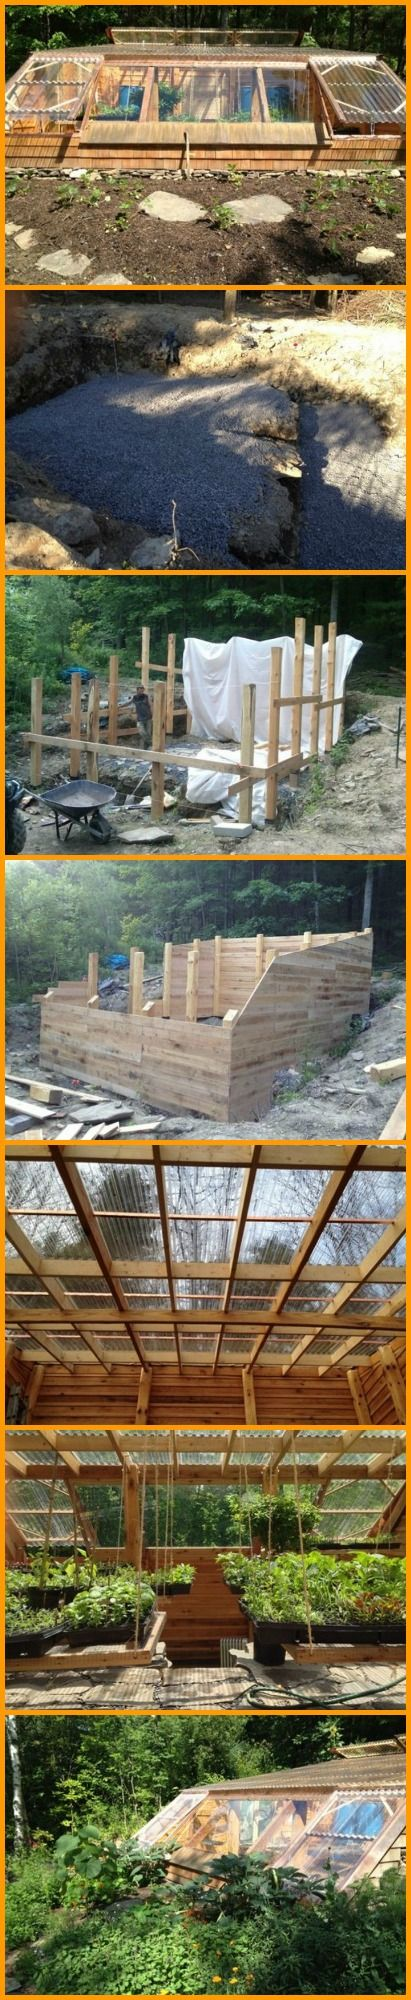 1000 ideas about earth sheltering on pinterest earth for Earth sheltered home kits